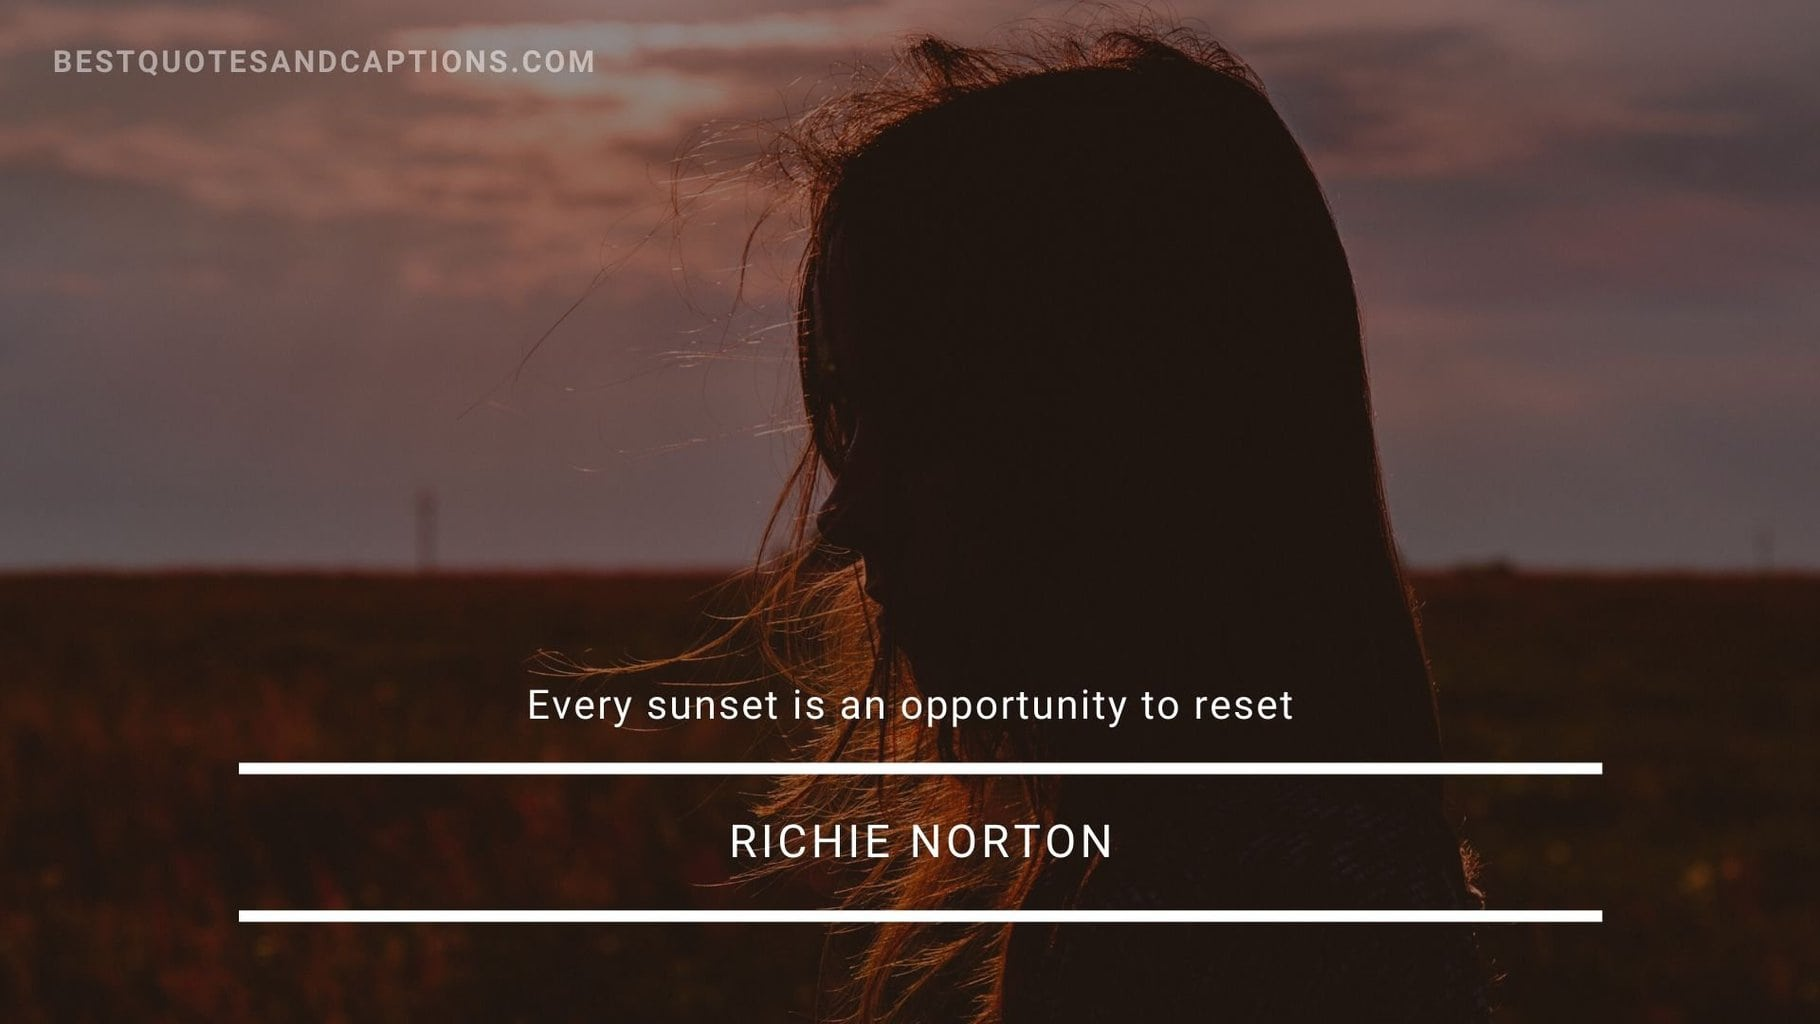 Sunset quotes about success